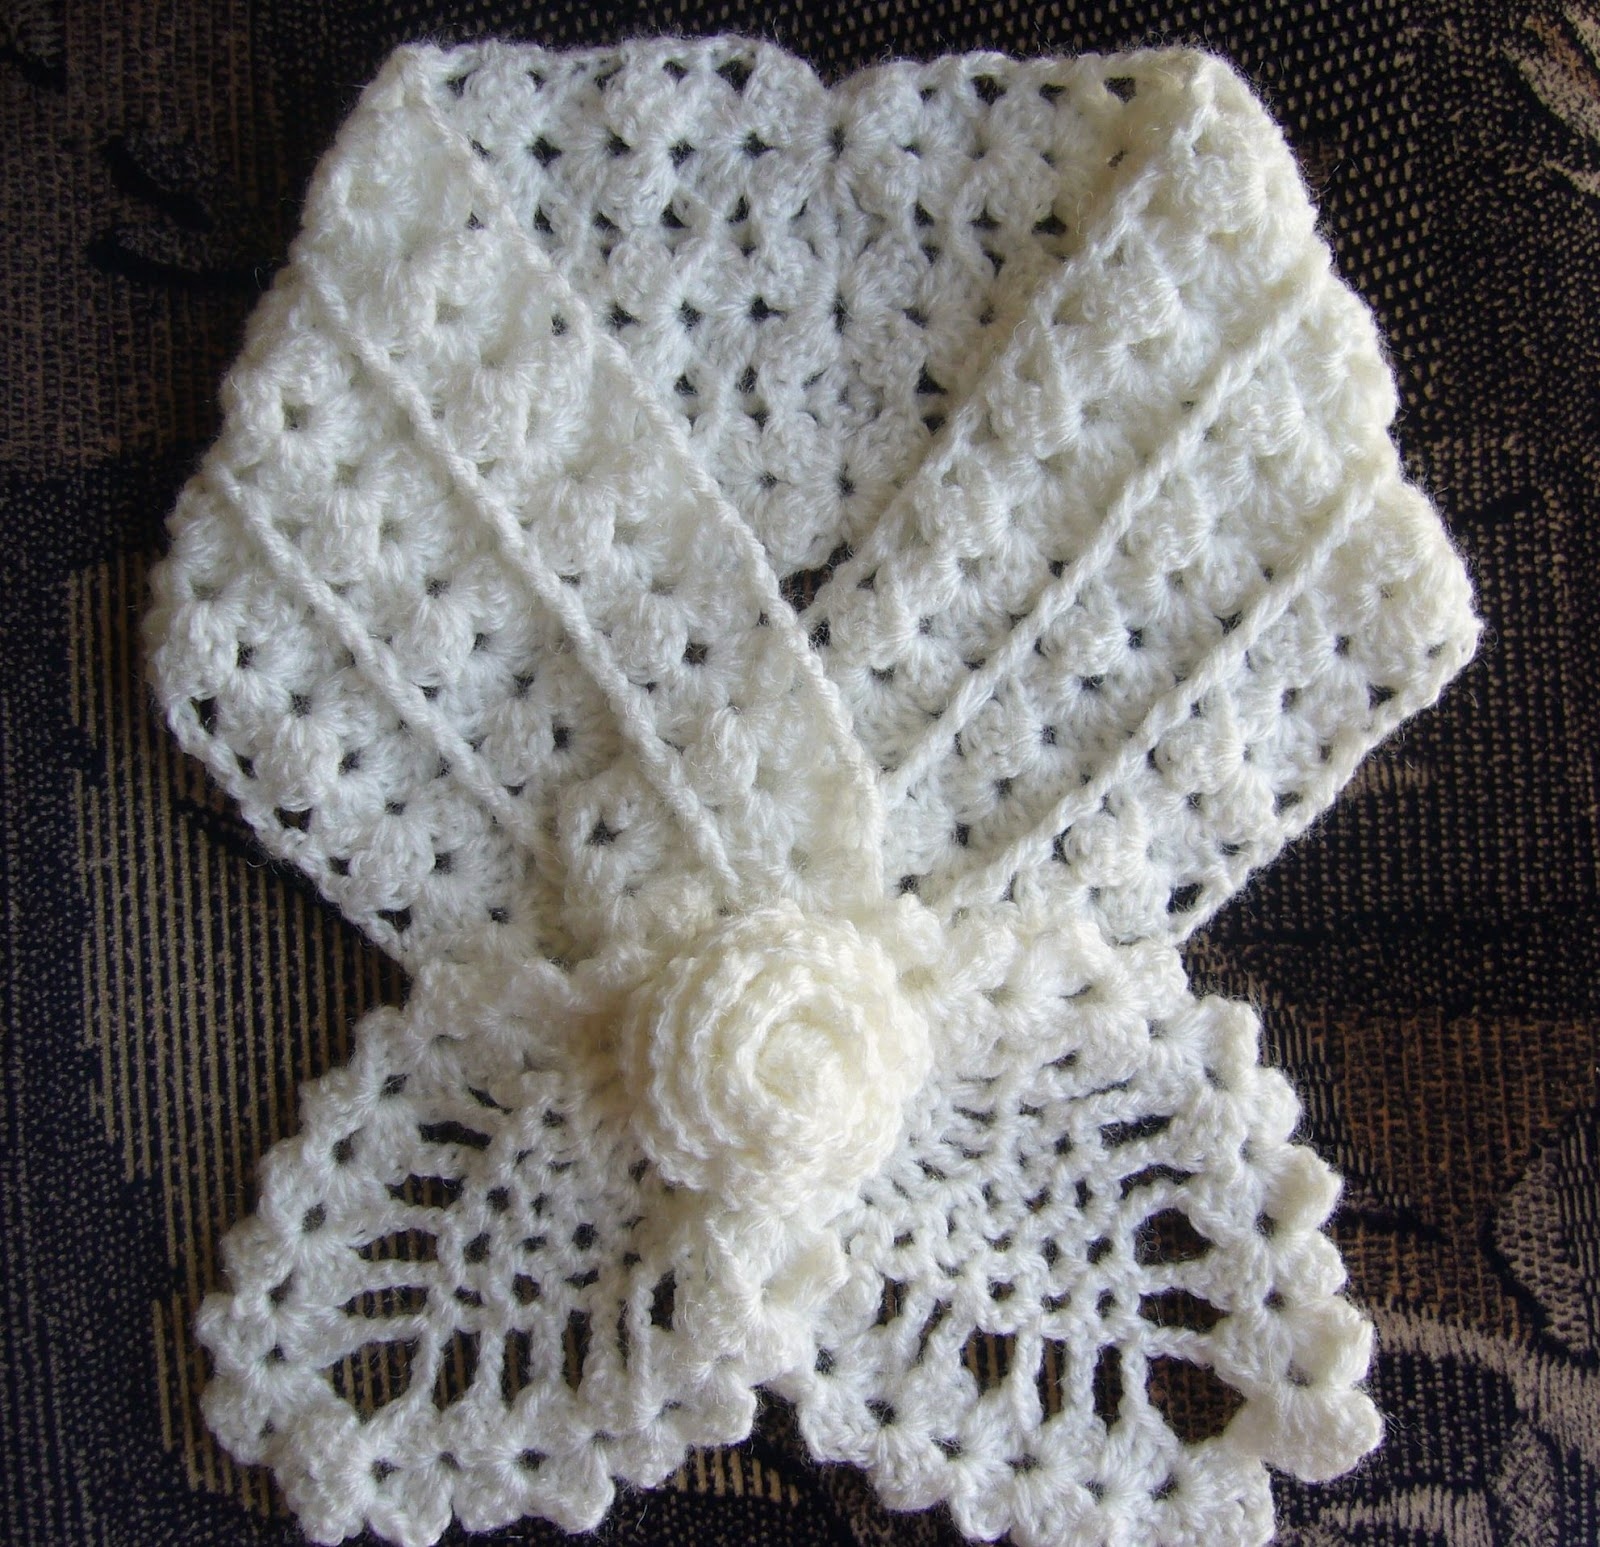 Crochet Neck Warmer : Crochetkari: Crochet Pineapple Neck warmer